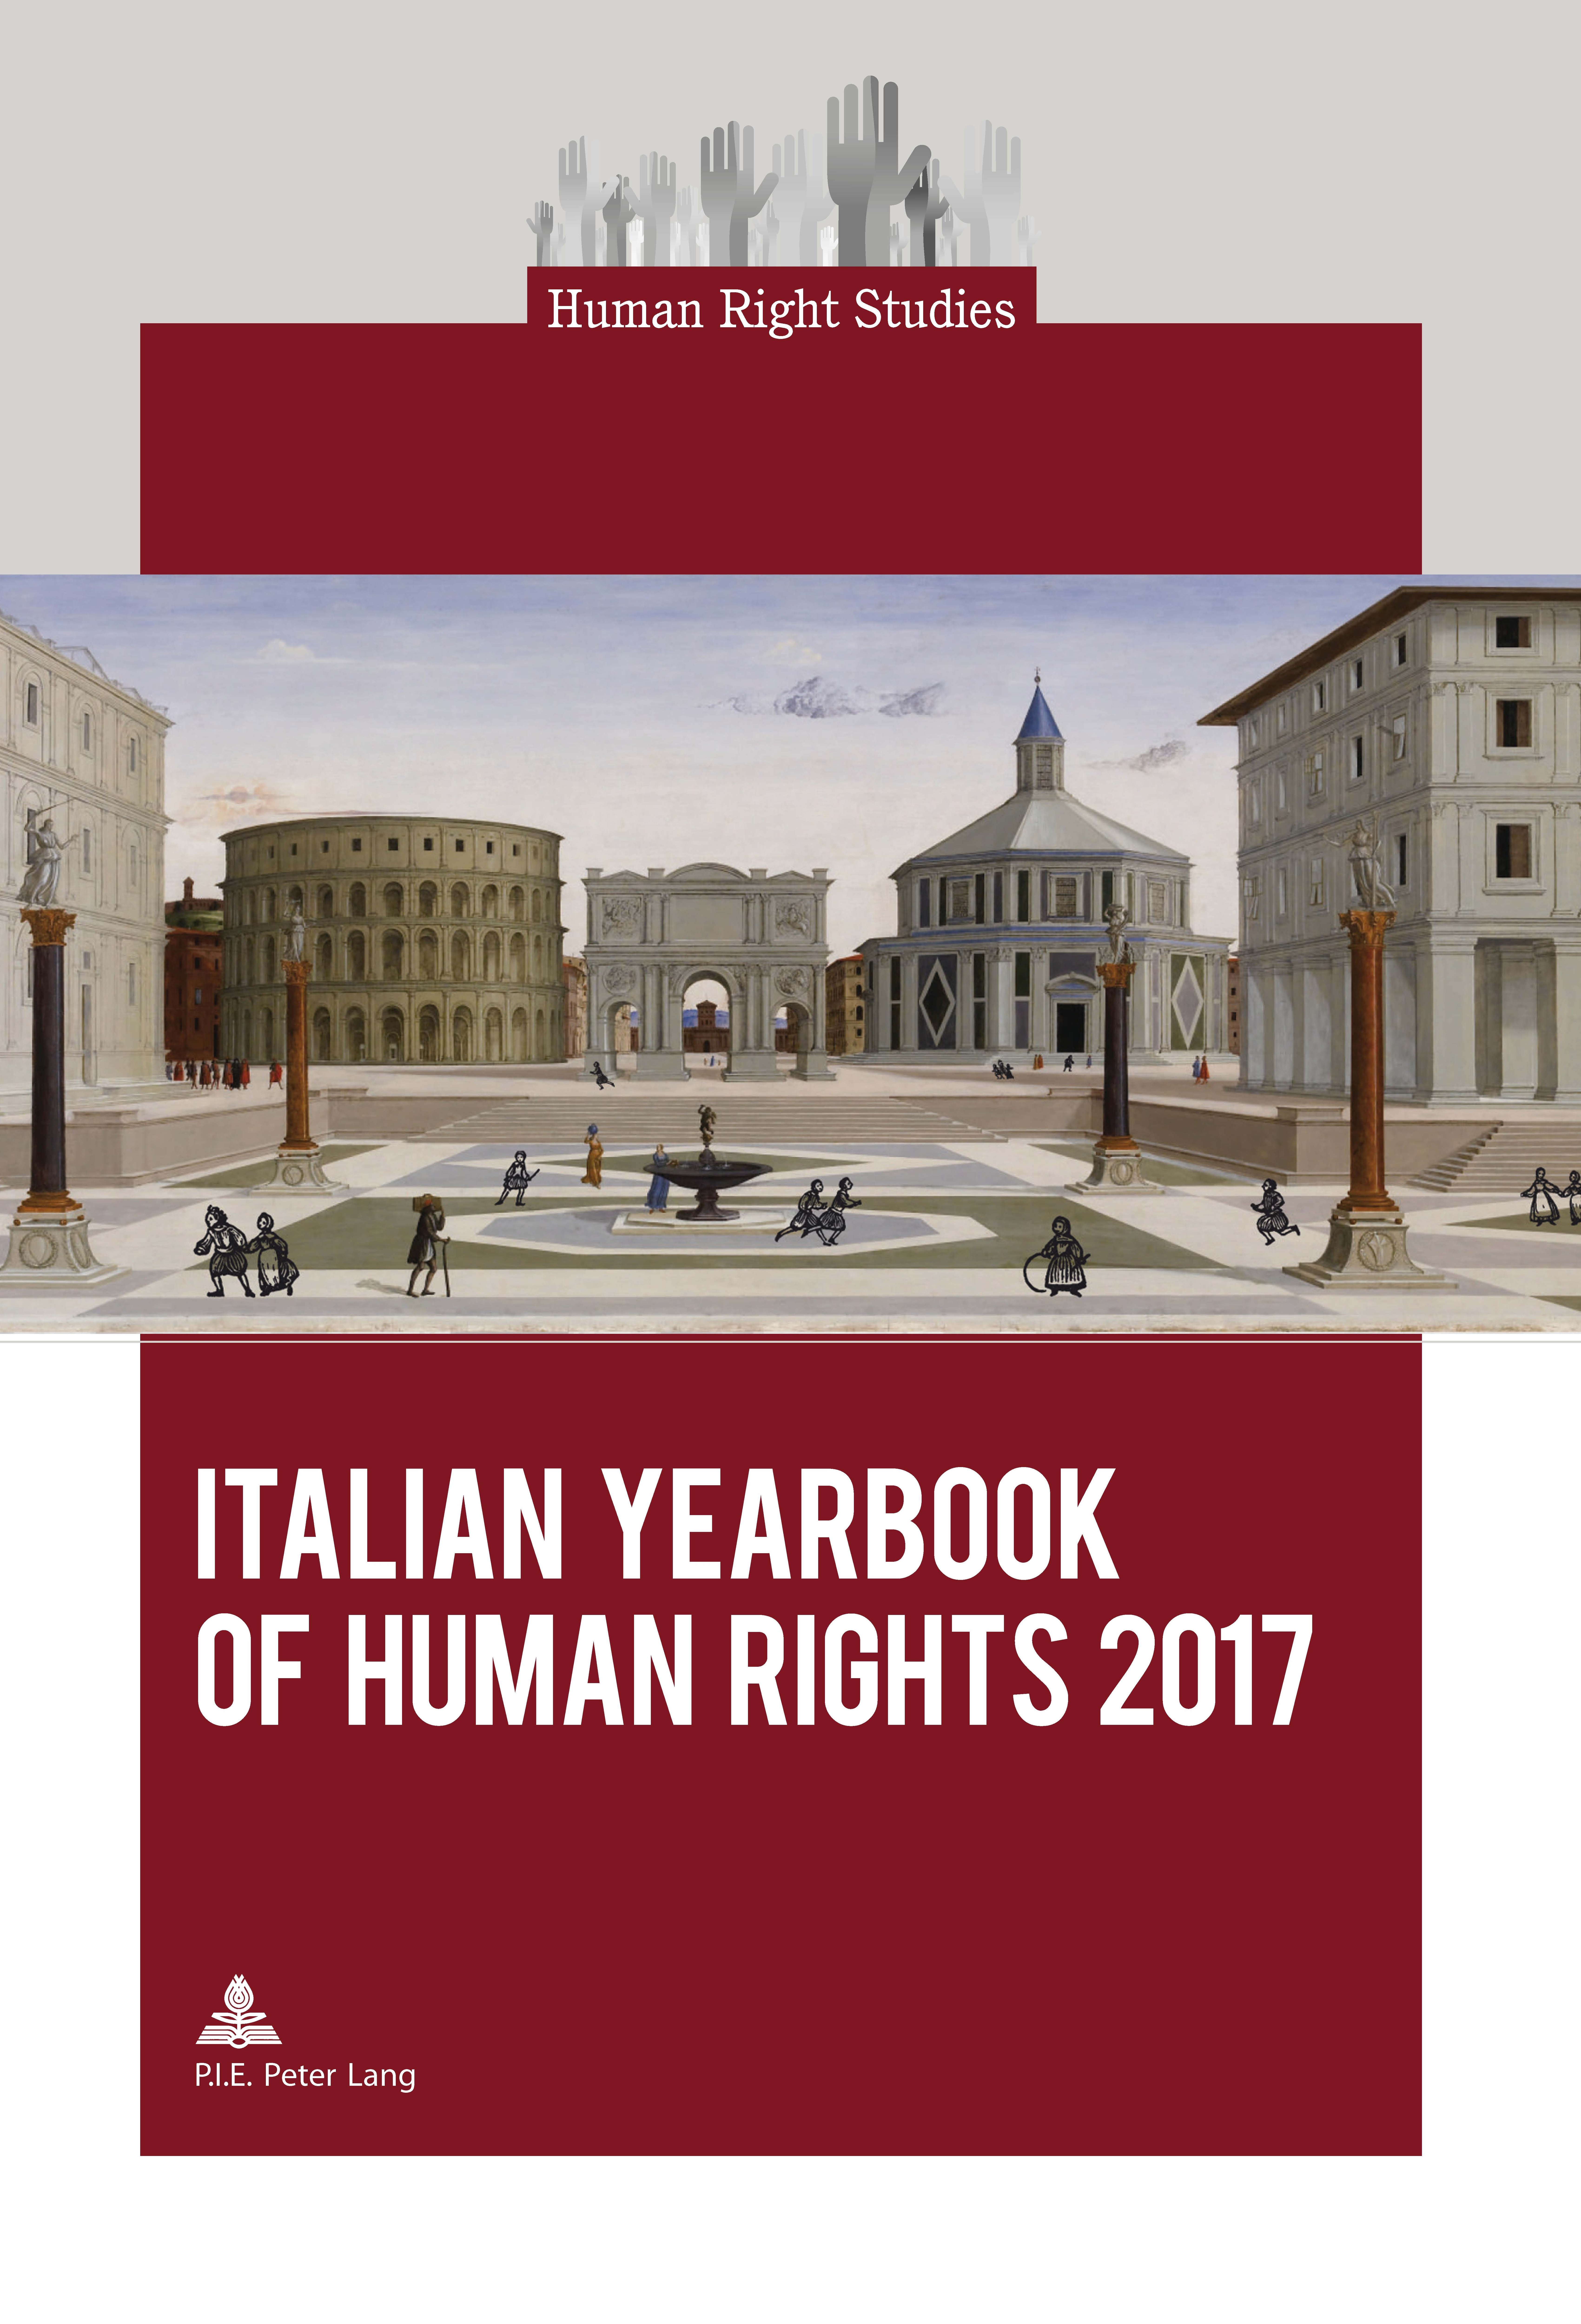 Cover of the Italian Yearbook of Human Rights 2017